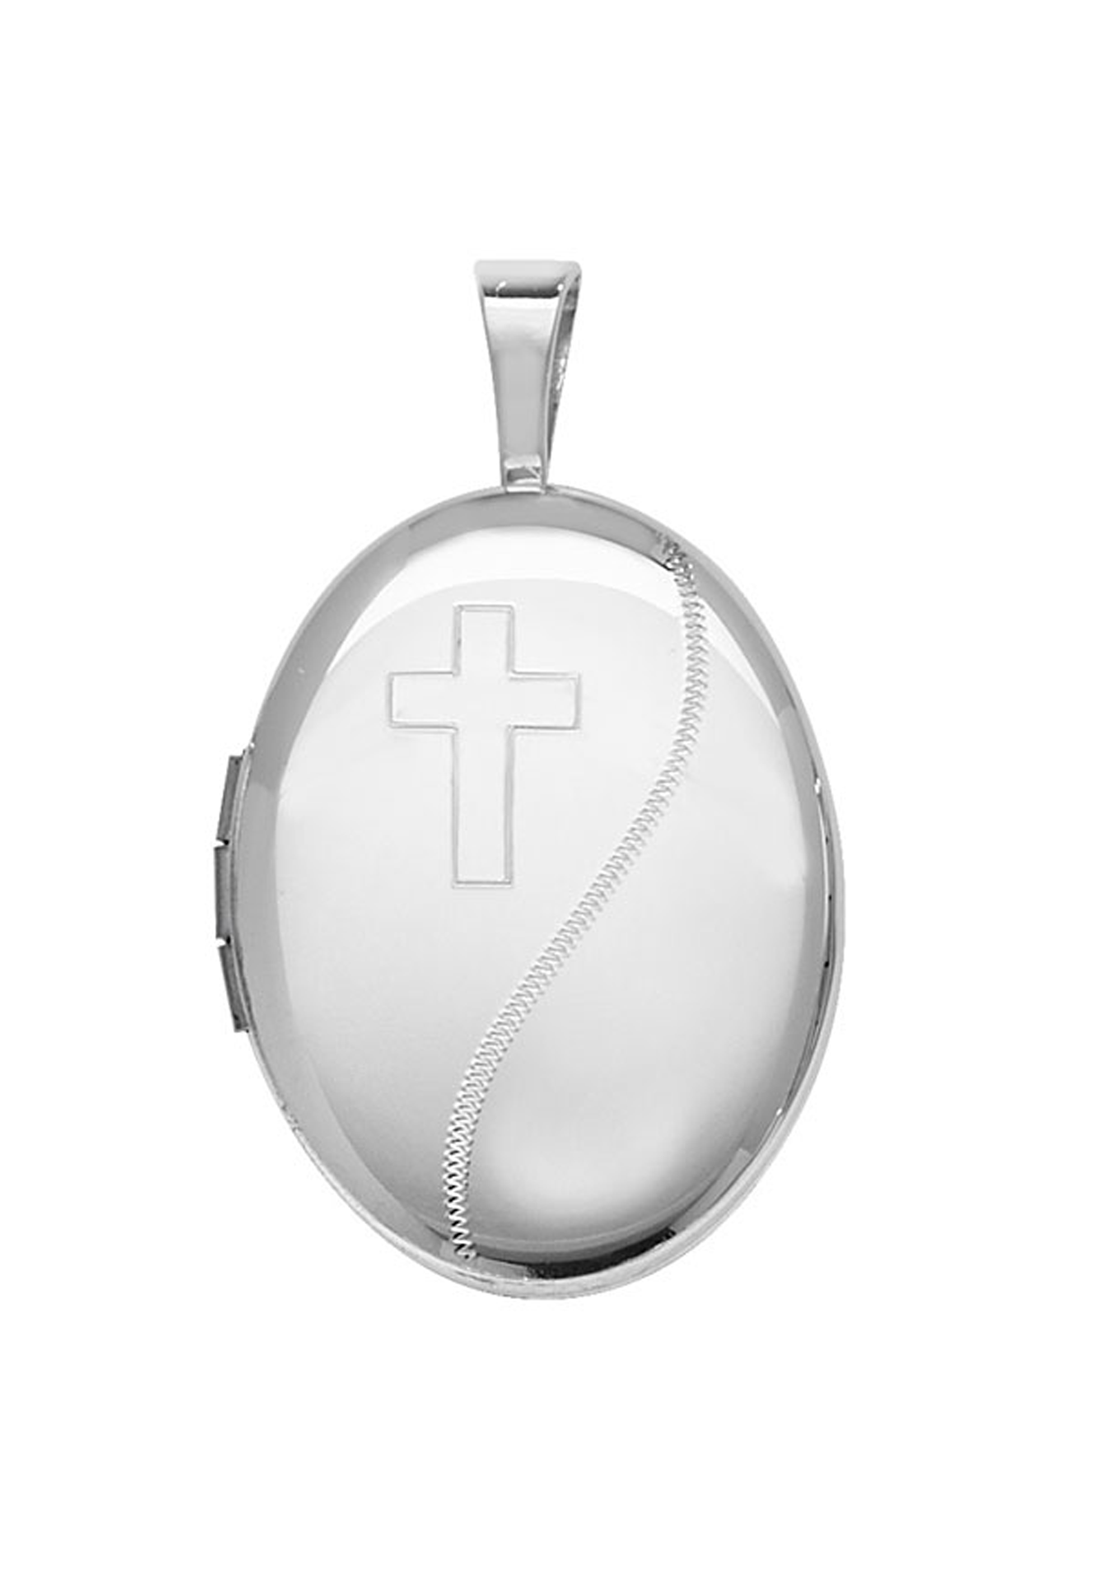 Girls Silver Locket with Cross Design & Chain, Silver